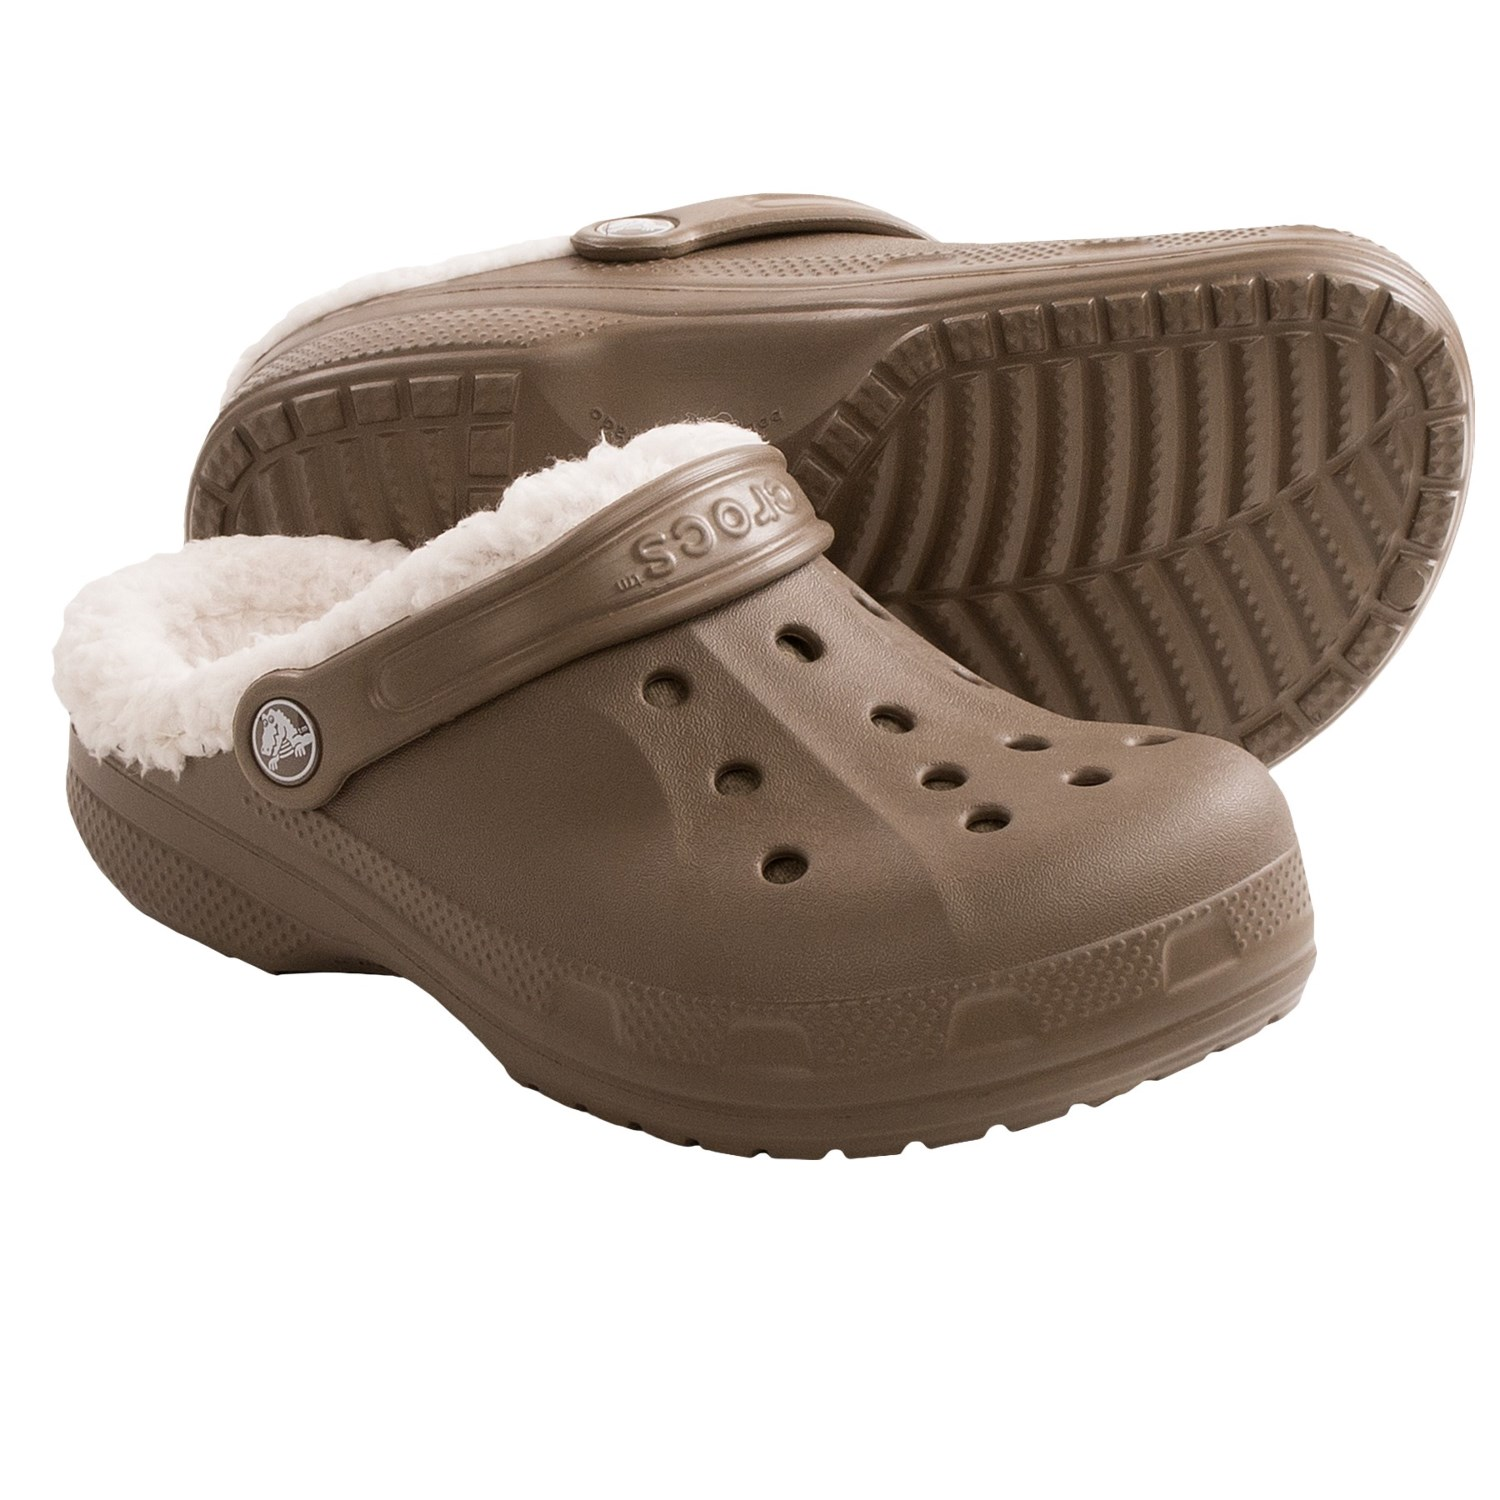 0d106064a484c1 Crocs Ralen Lined Clogs (For Kids and Youth) 9082H - Save 43%